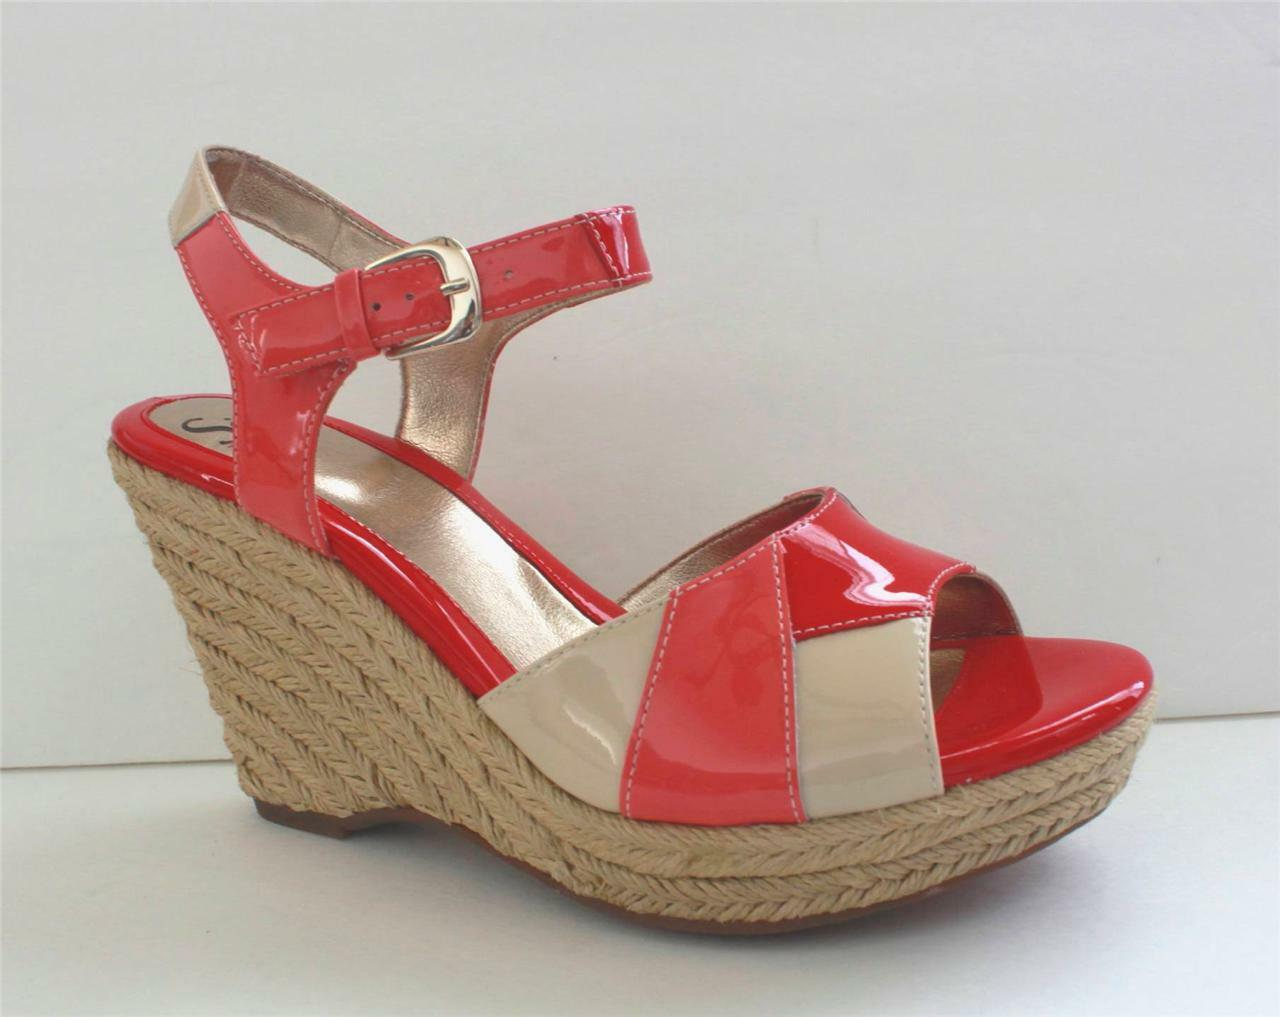 Sofft Coral Women's Patent Leather Wedge Sandal Heel Shoes Size 9 Euro 40